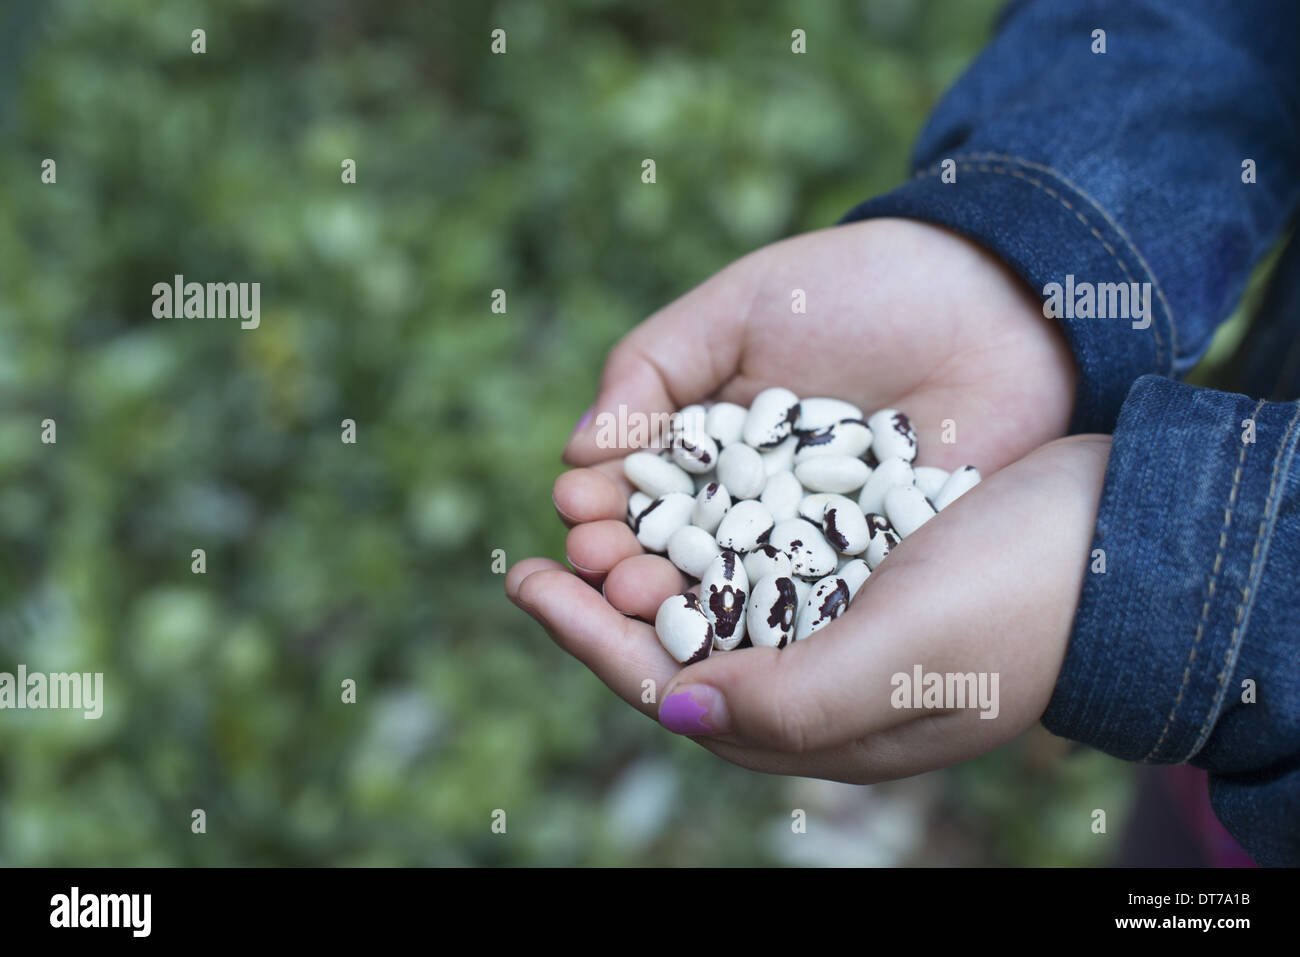 A girl holding out cupped hands, with dried beans. - Stock Image